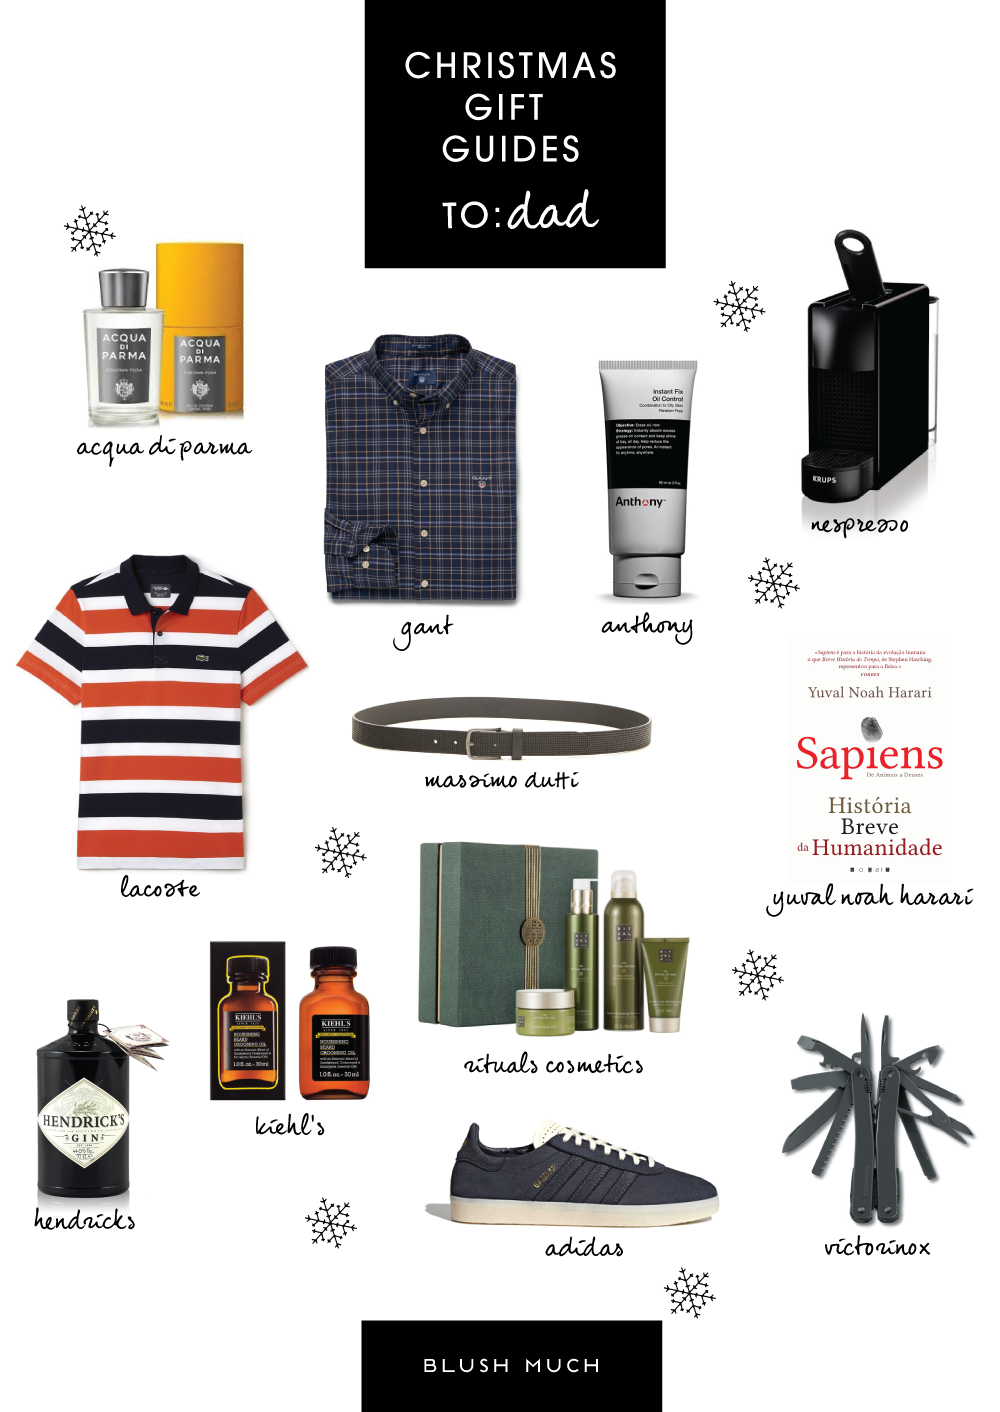 Christmas Gift Guides — To: Dad – Blush Much